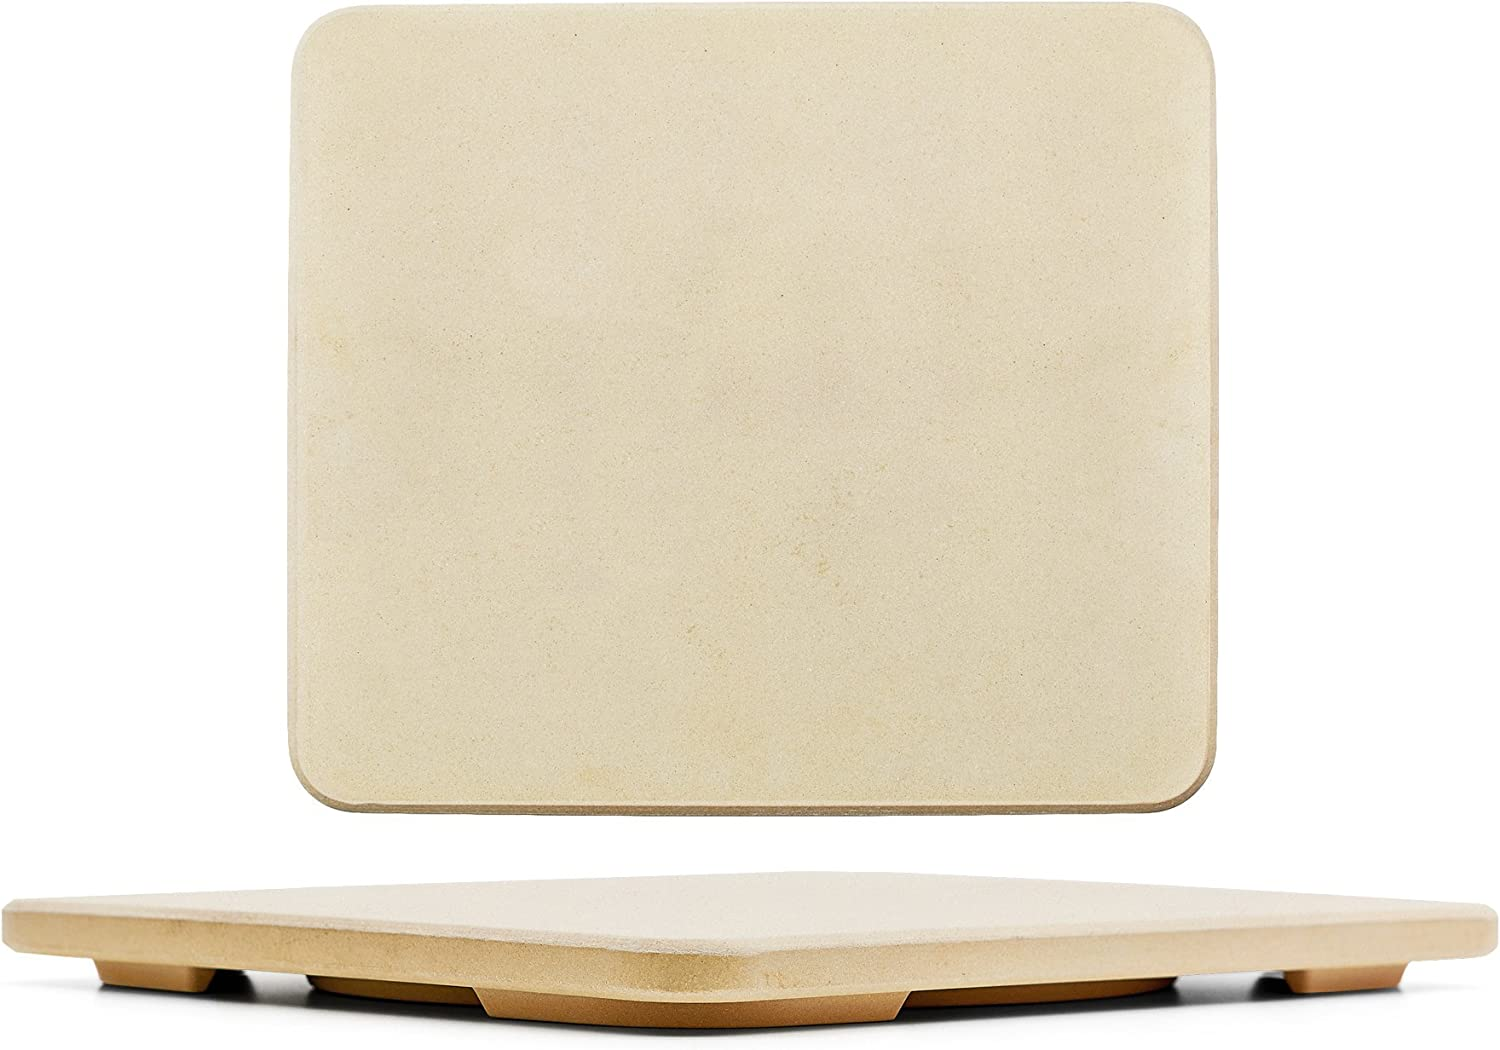 1. Solido Rectangular 14-by-16-inch Pizza Stone